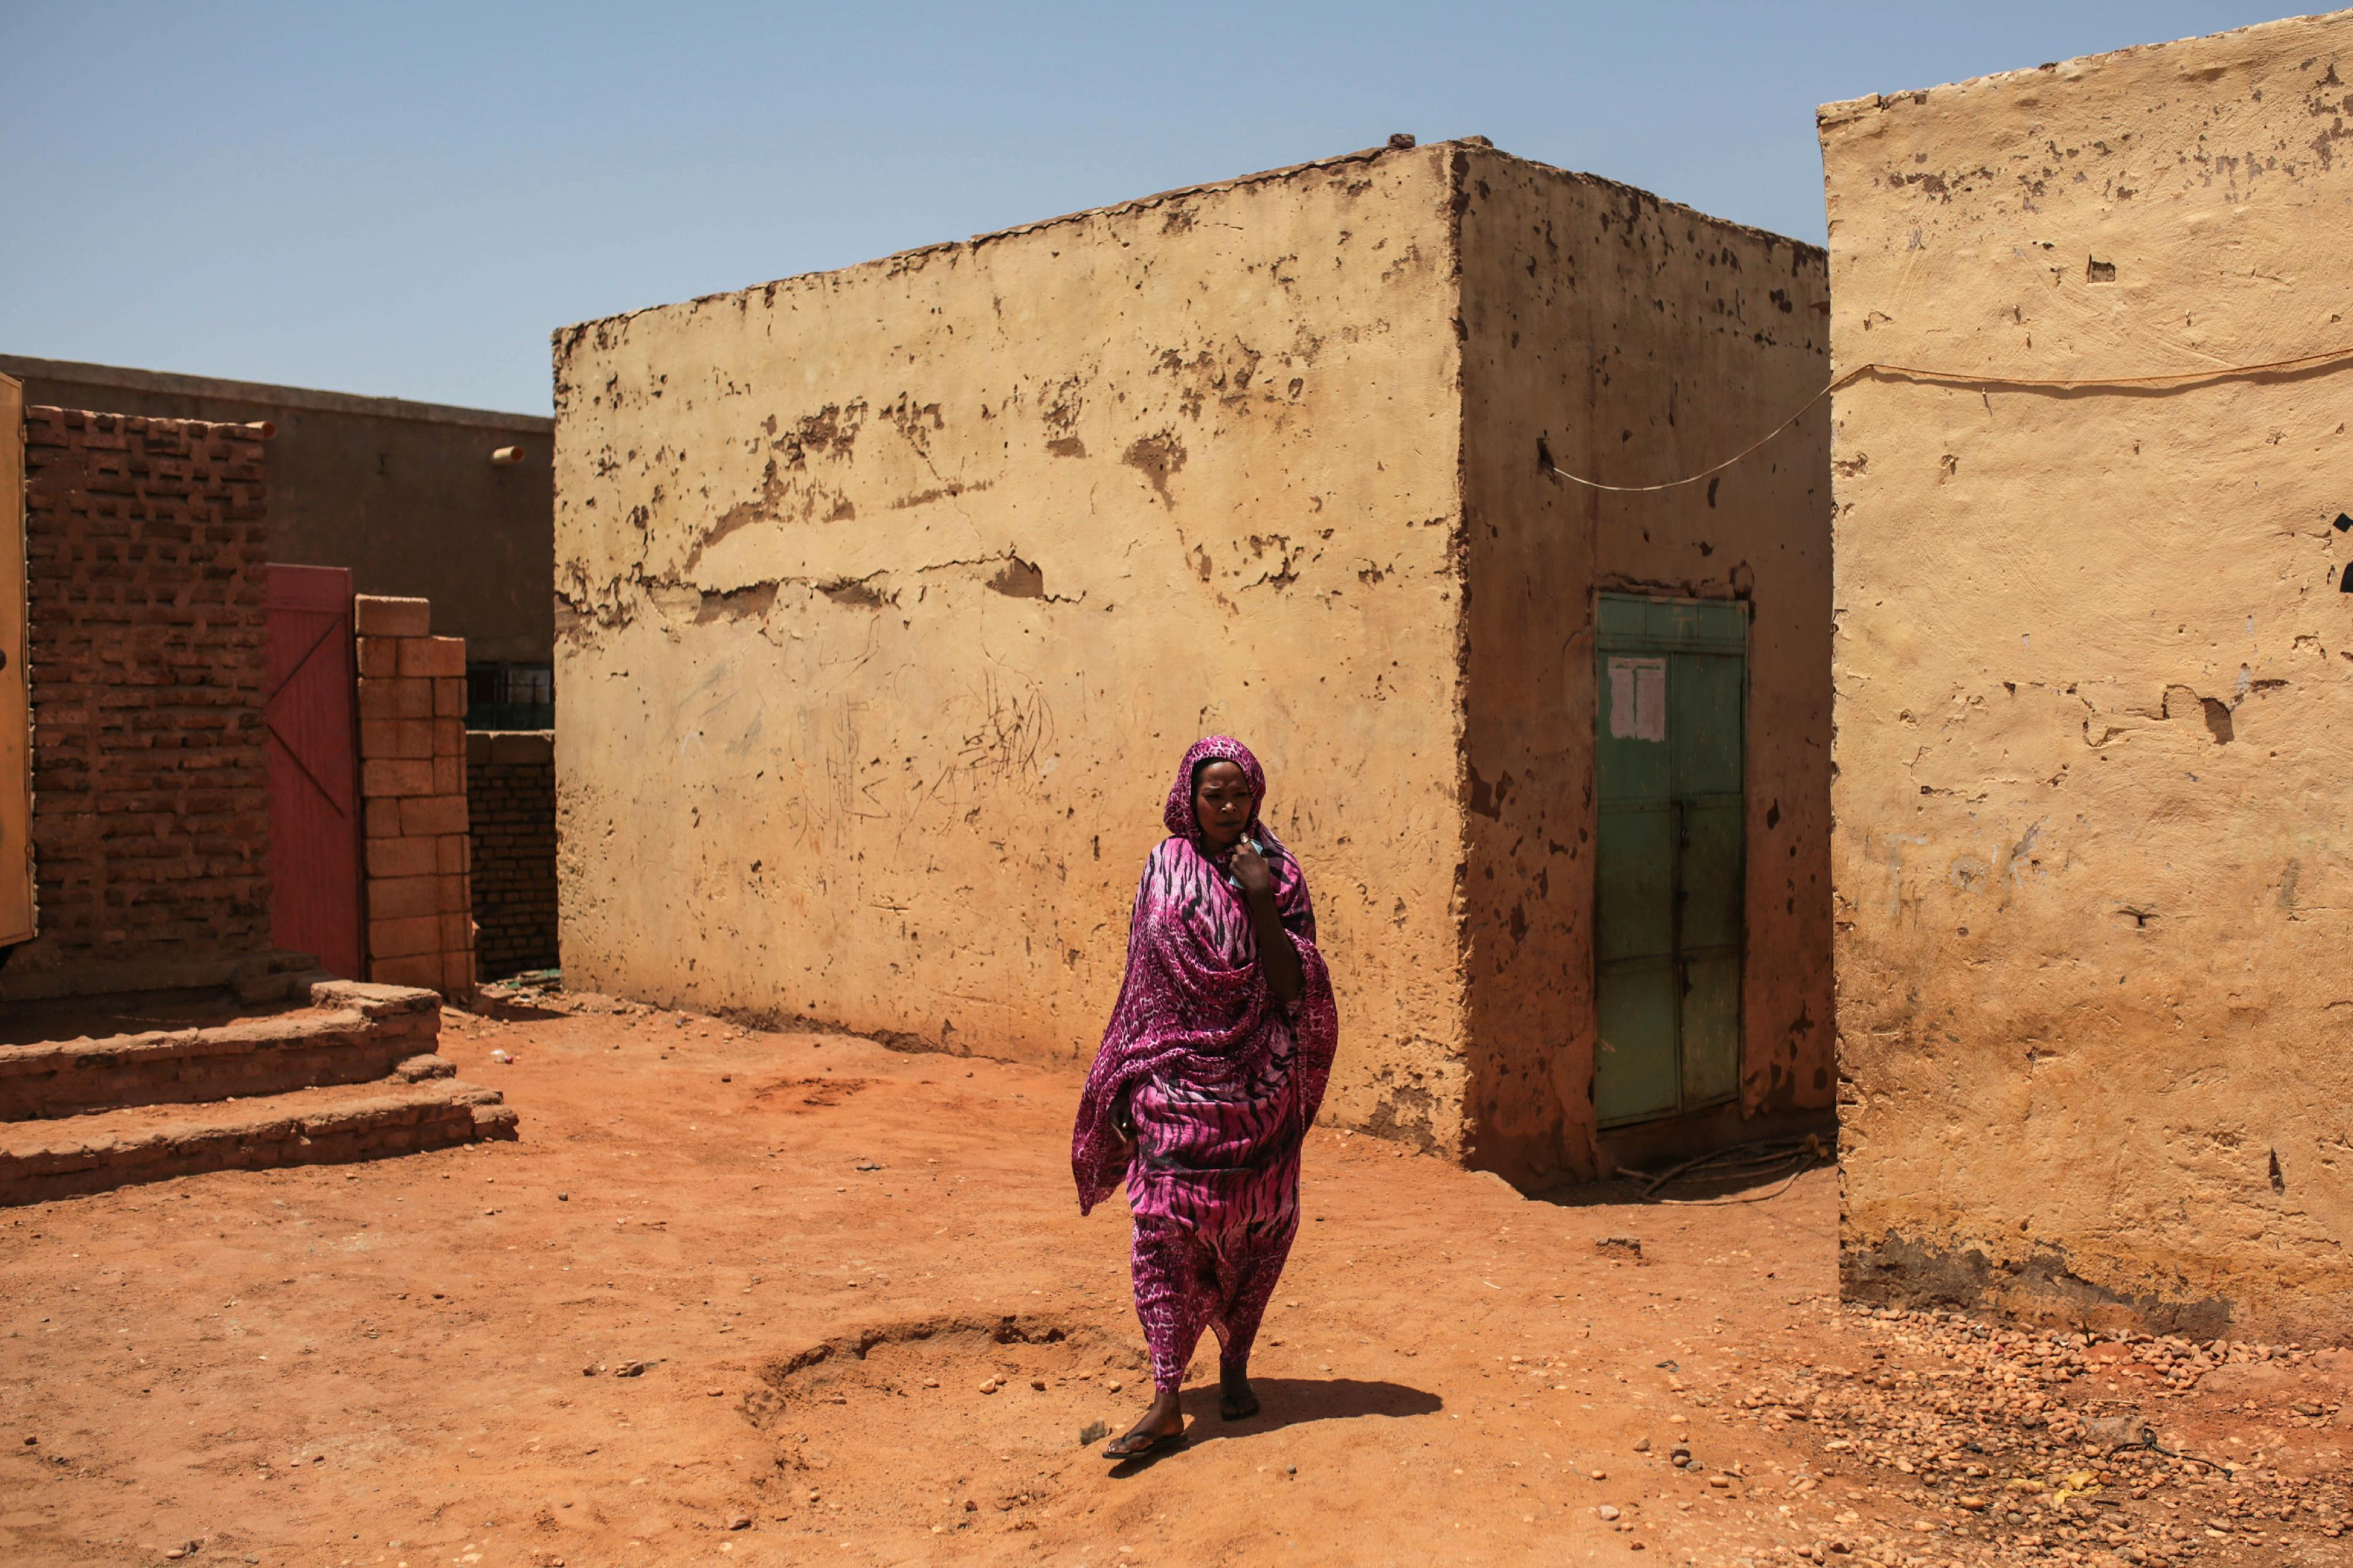 In Sudan, poverty, heavy security grip under longtime leader